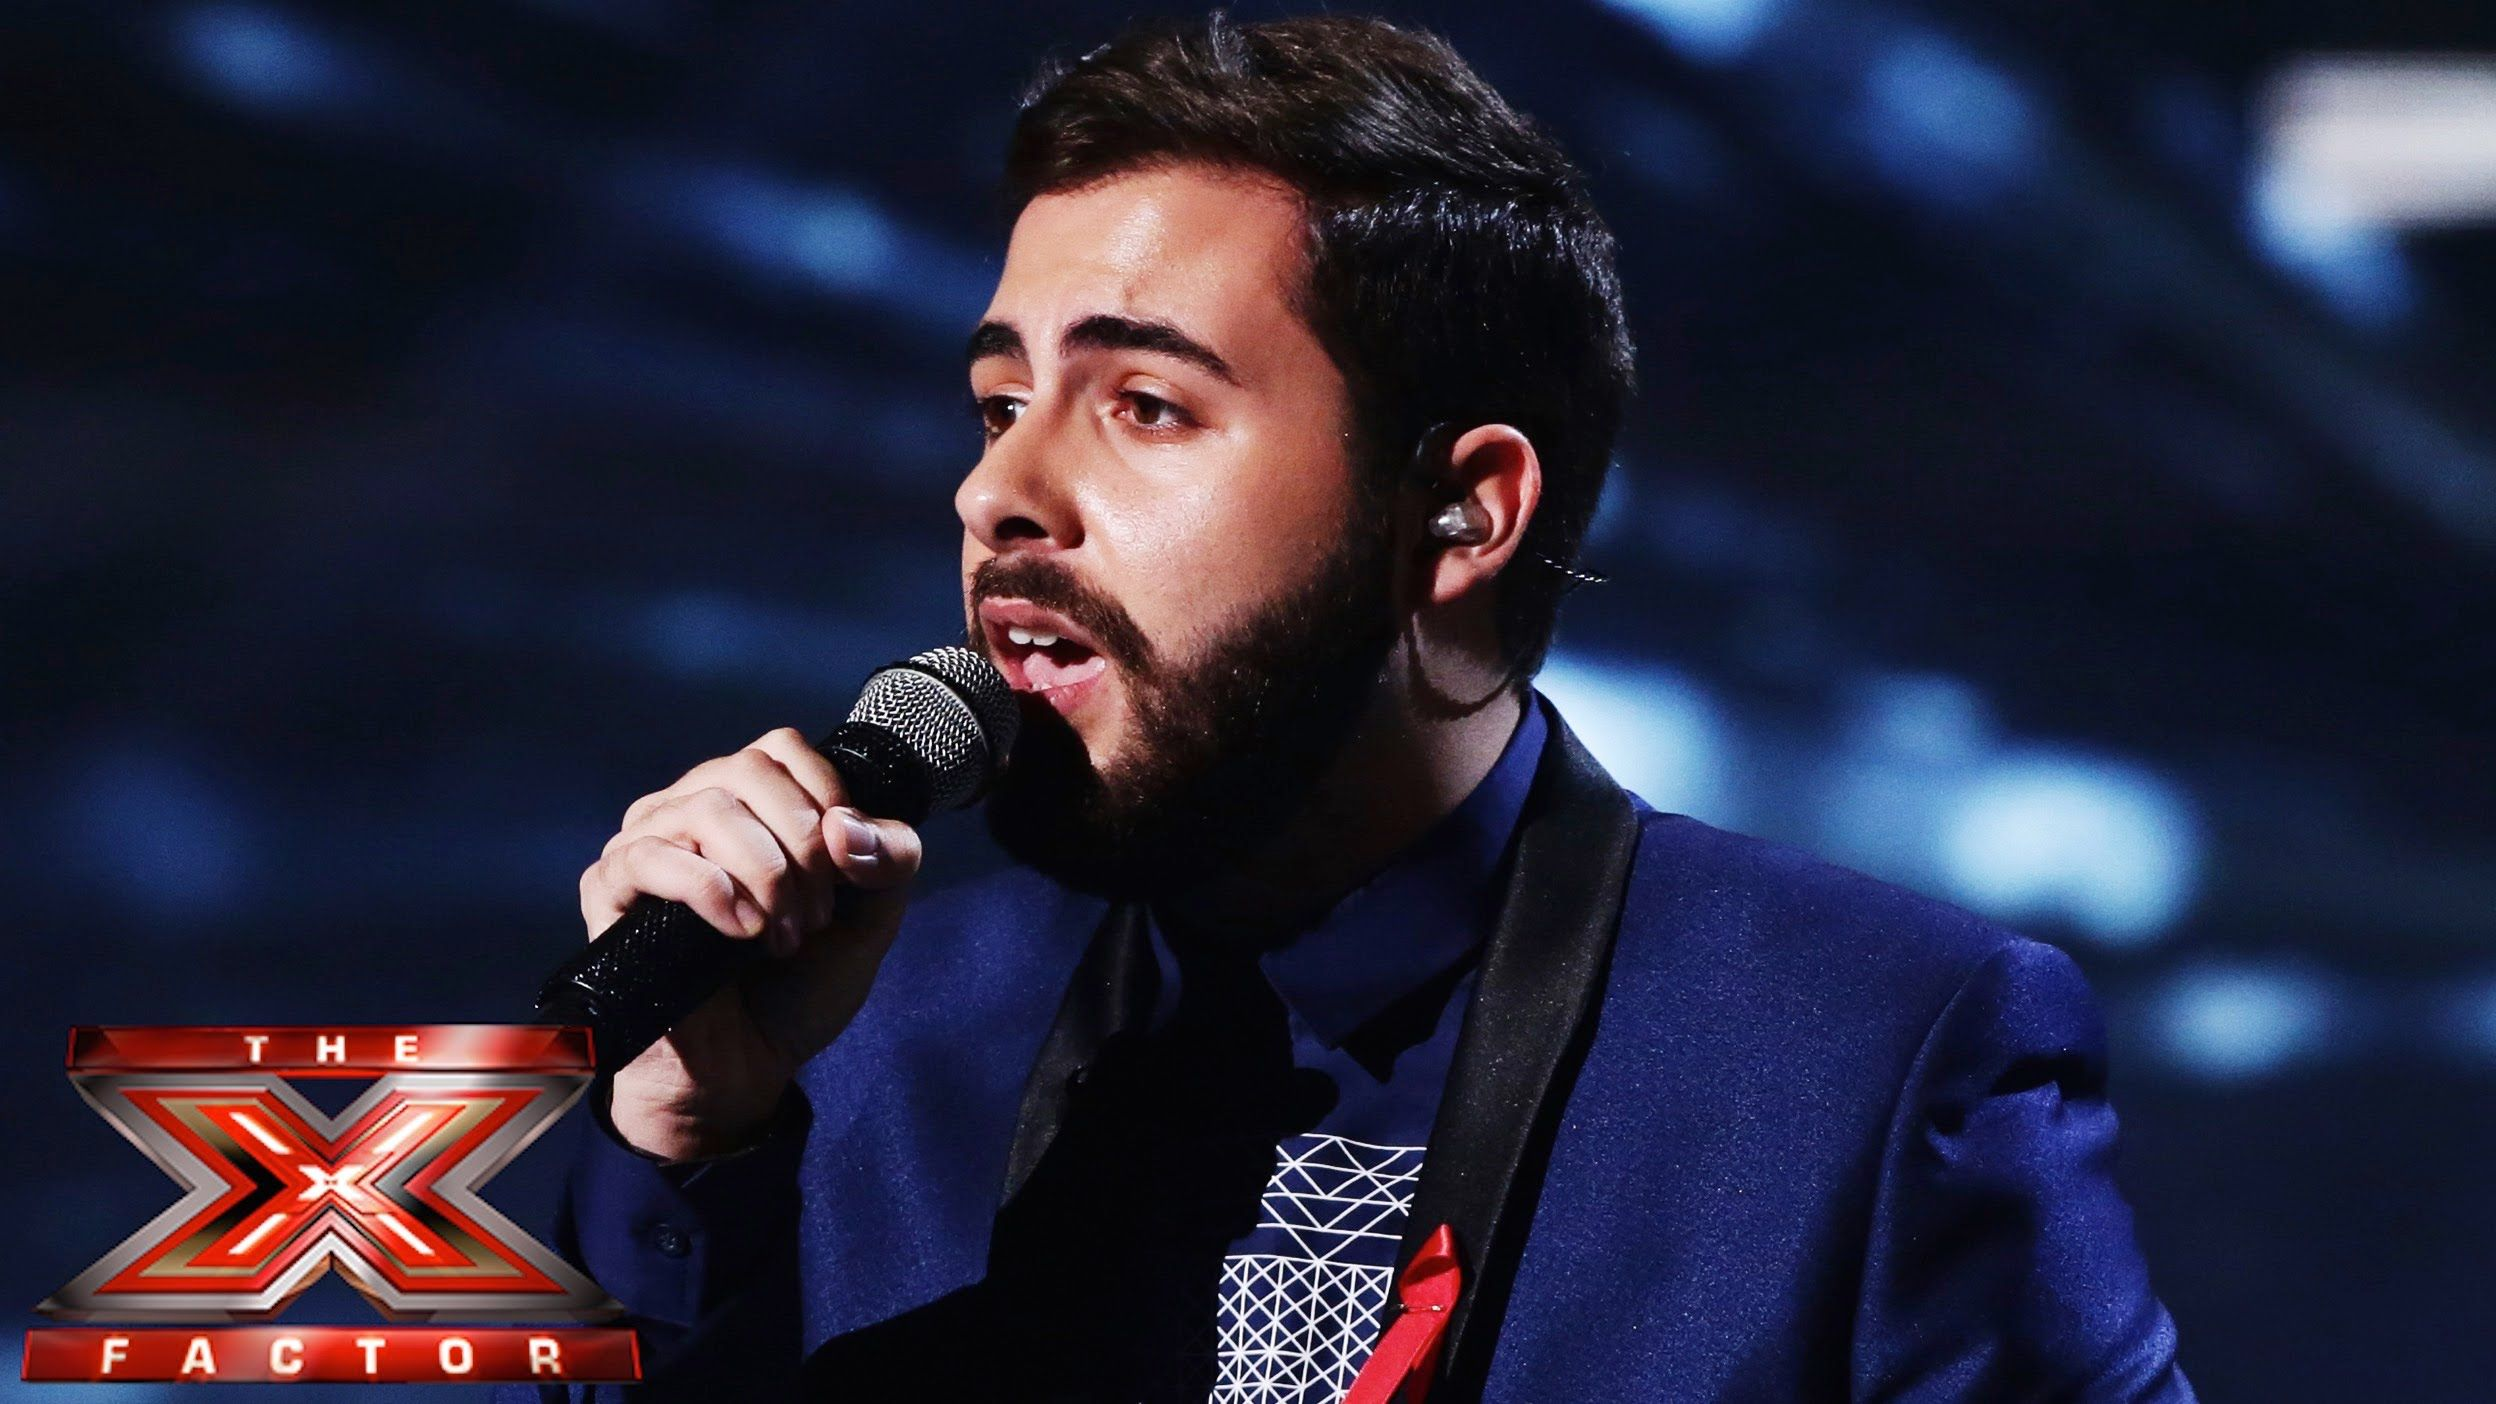 Andrea faustini sings sias chandelier live week 8 the x factor andrea faustini sings sias chandelier live week 8 the x factor uk 2014 aloadofball Image collections